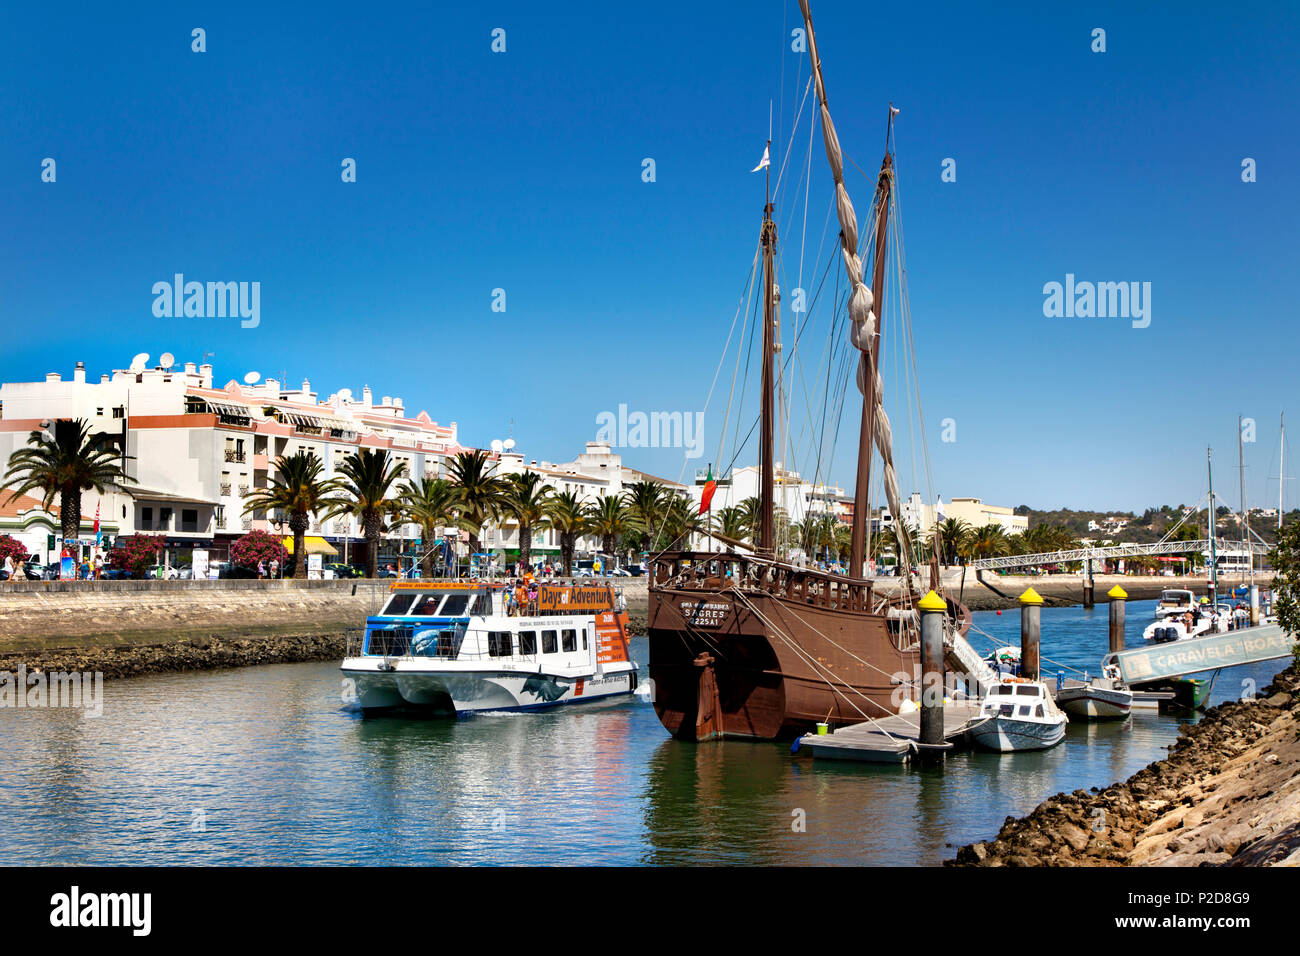 Excursion boat for dolphin watching, Lagos, Algarve, Portugal - Stock Image